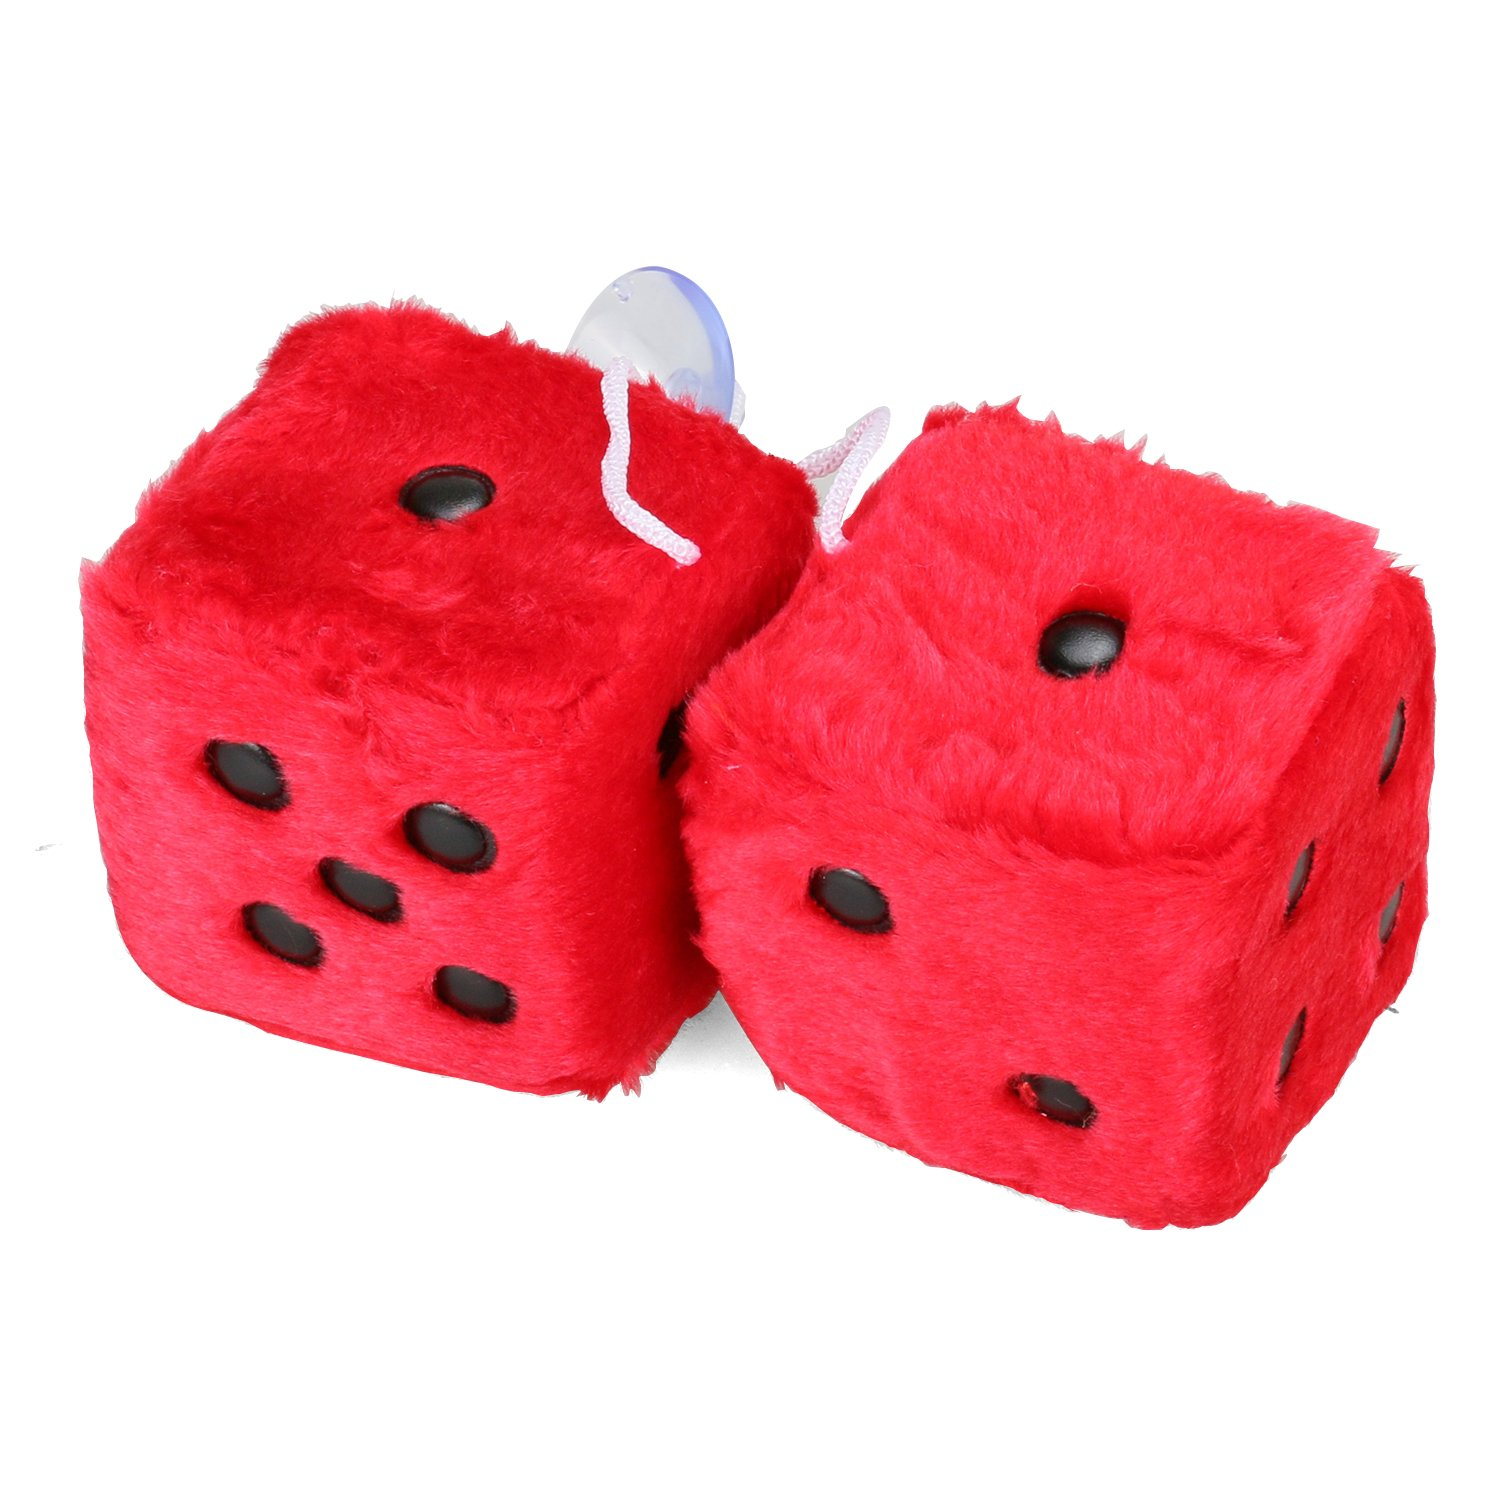 MRCARTOOL 3 inch Pair of Retro Square Mirror Hanging Dice Couple Fuzzy Plush Dice with Dots for Car Interior Ornament Decoration (White)